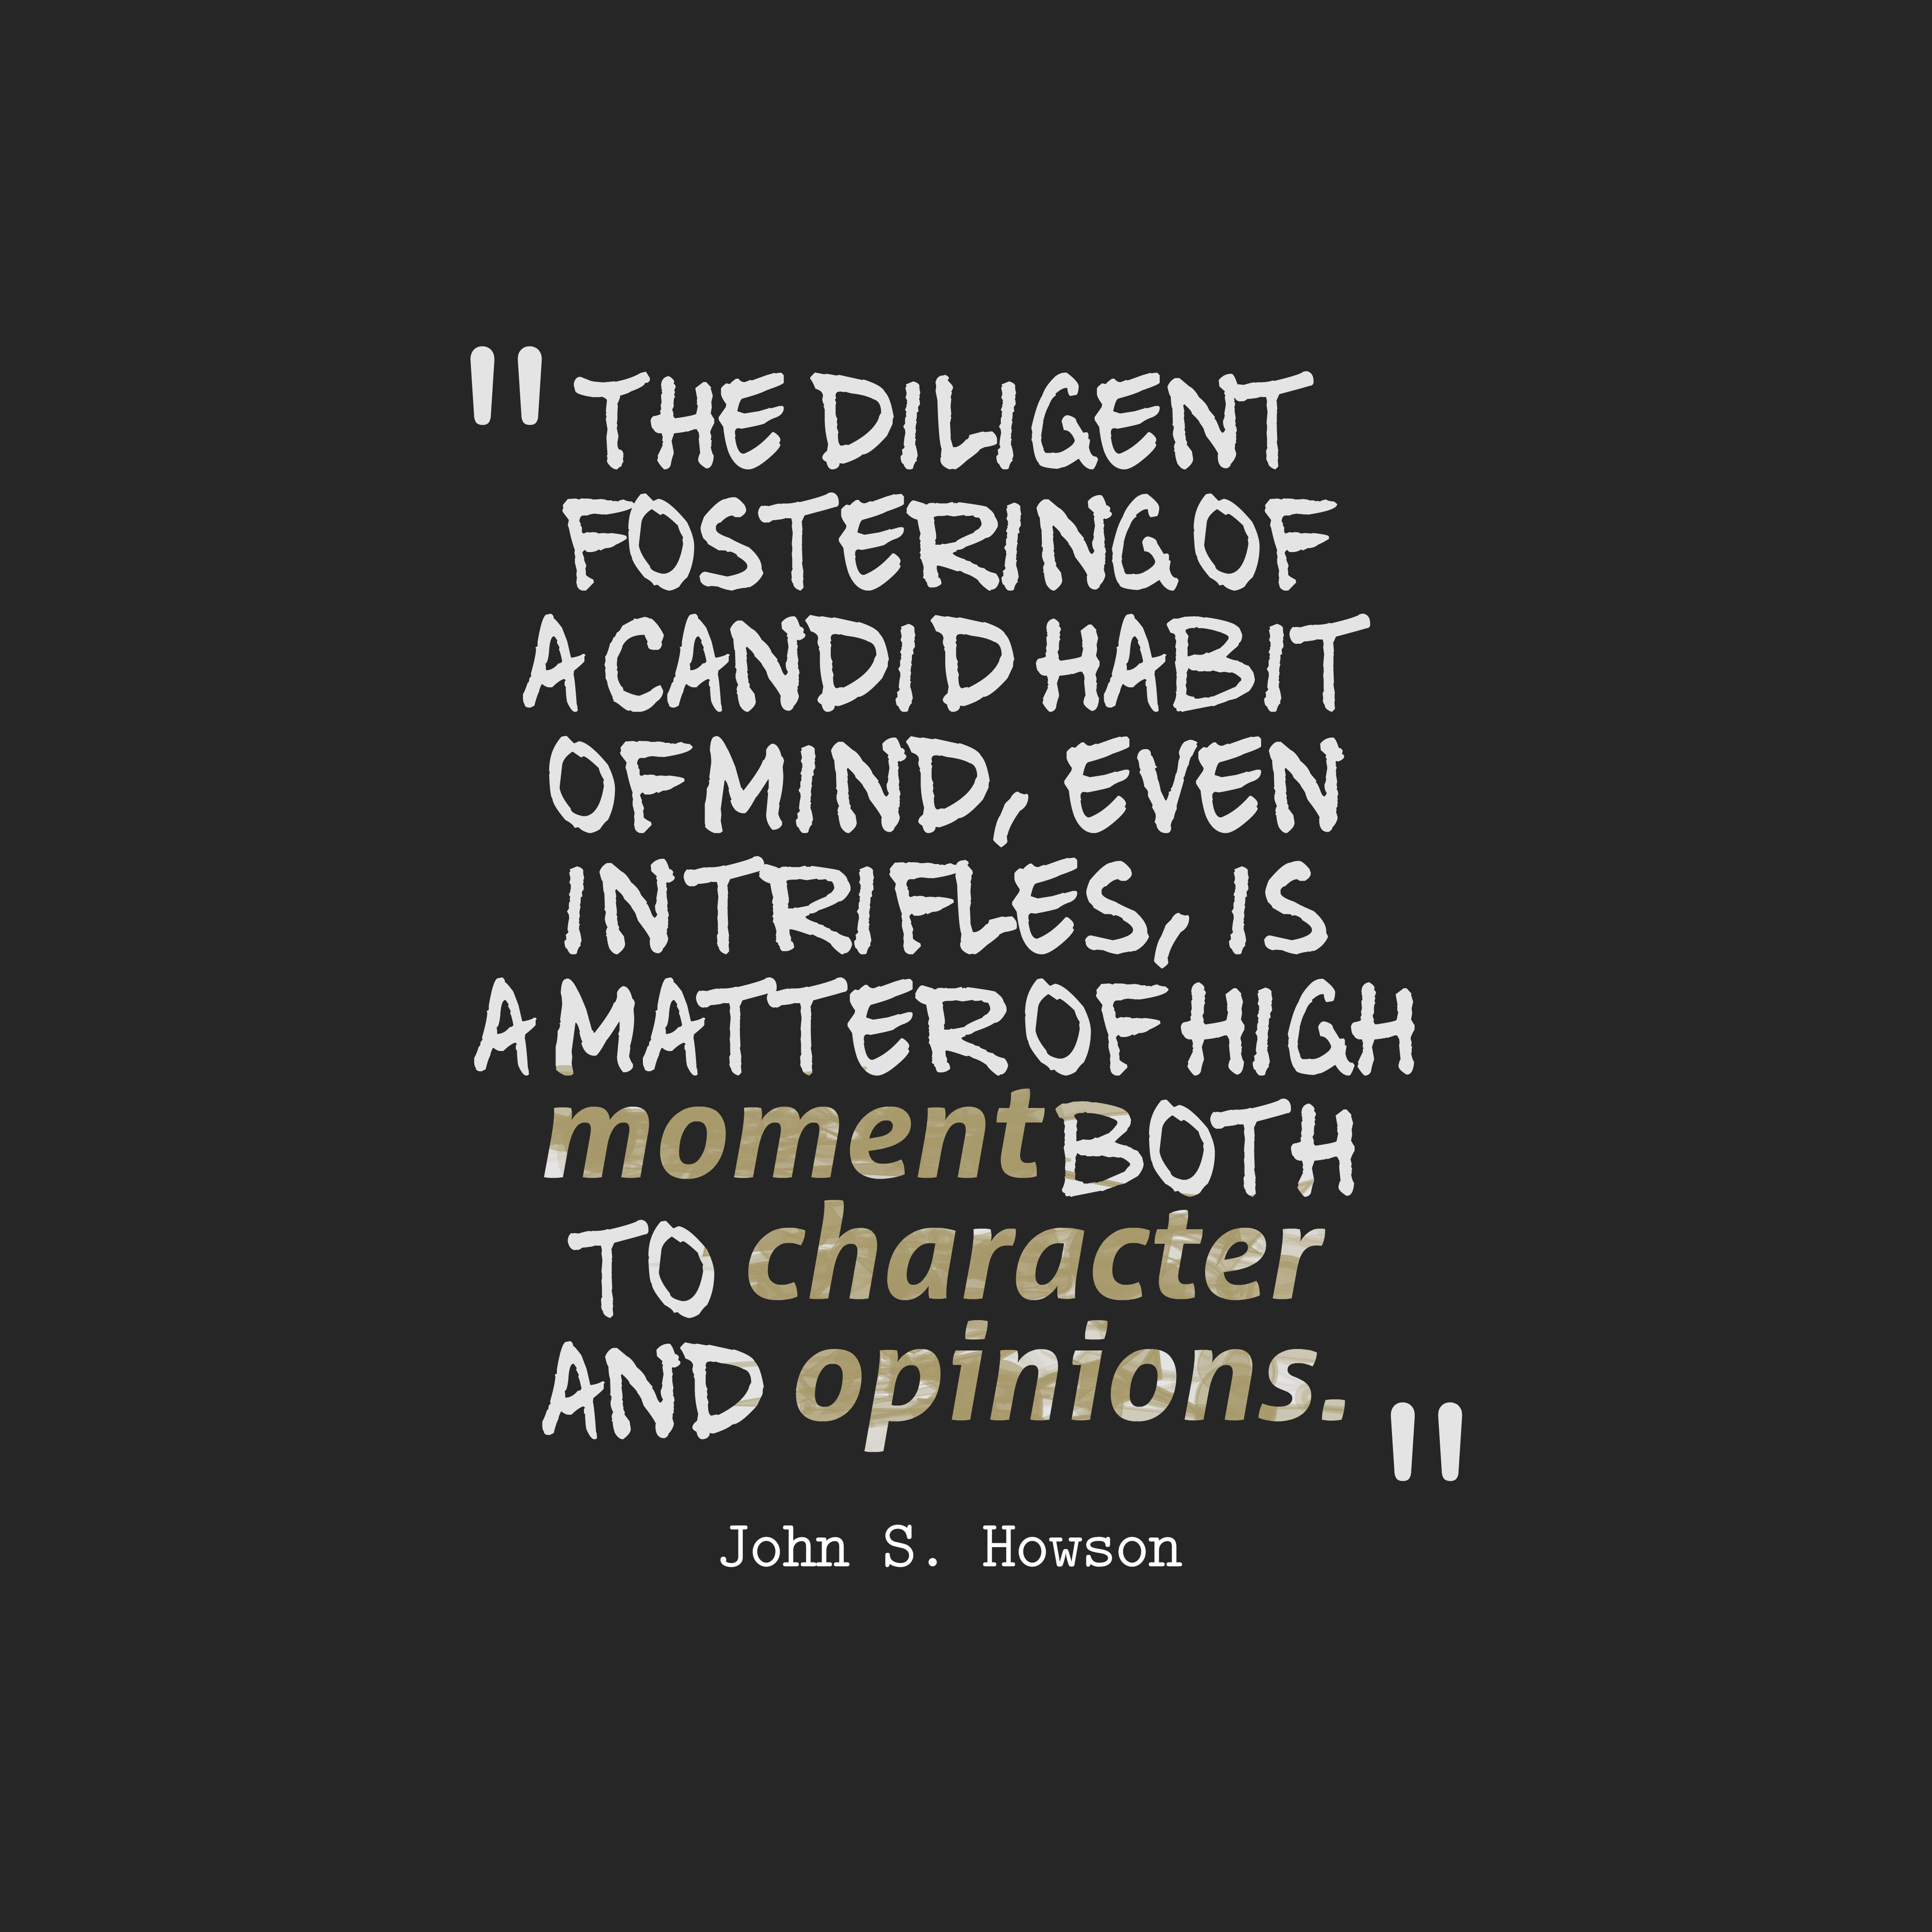 Quotes image of The diligent fostering of a candid habit of mind, even in trifles, is a matter of high moment both to character and opinions.